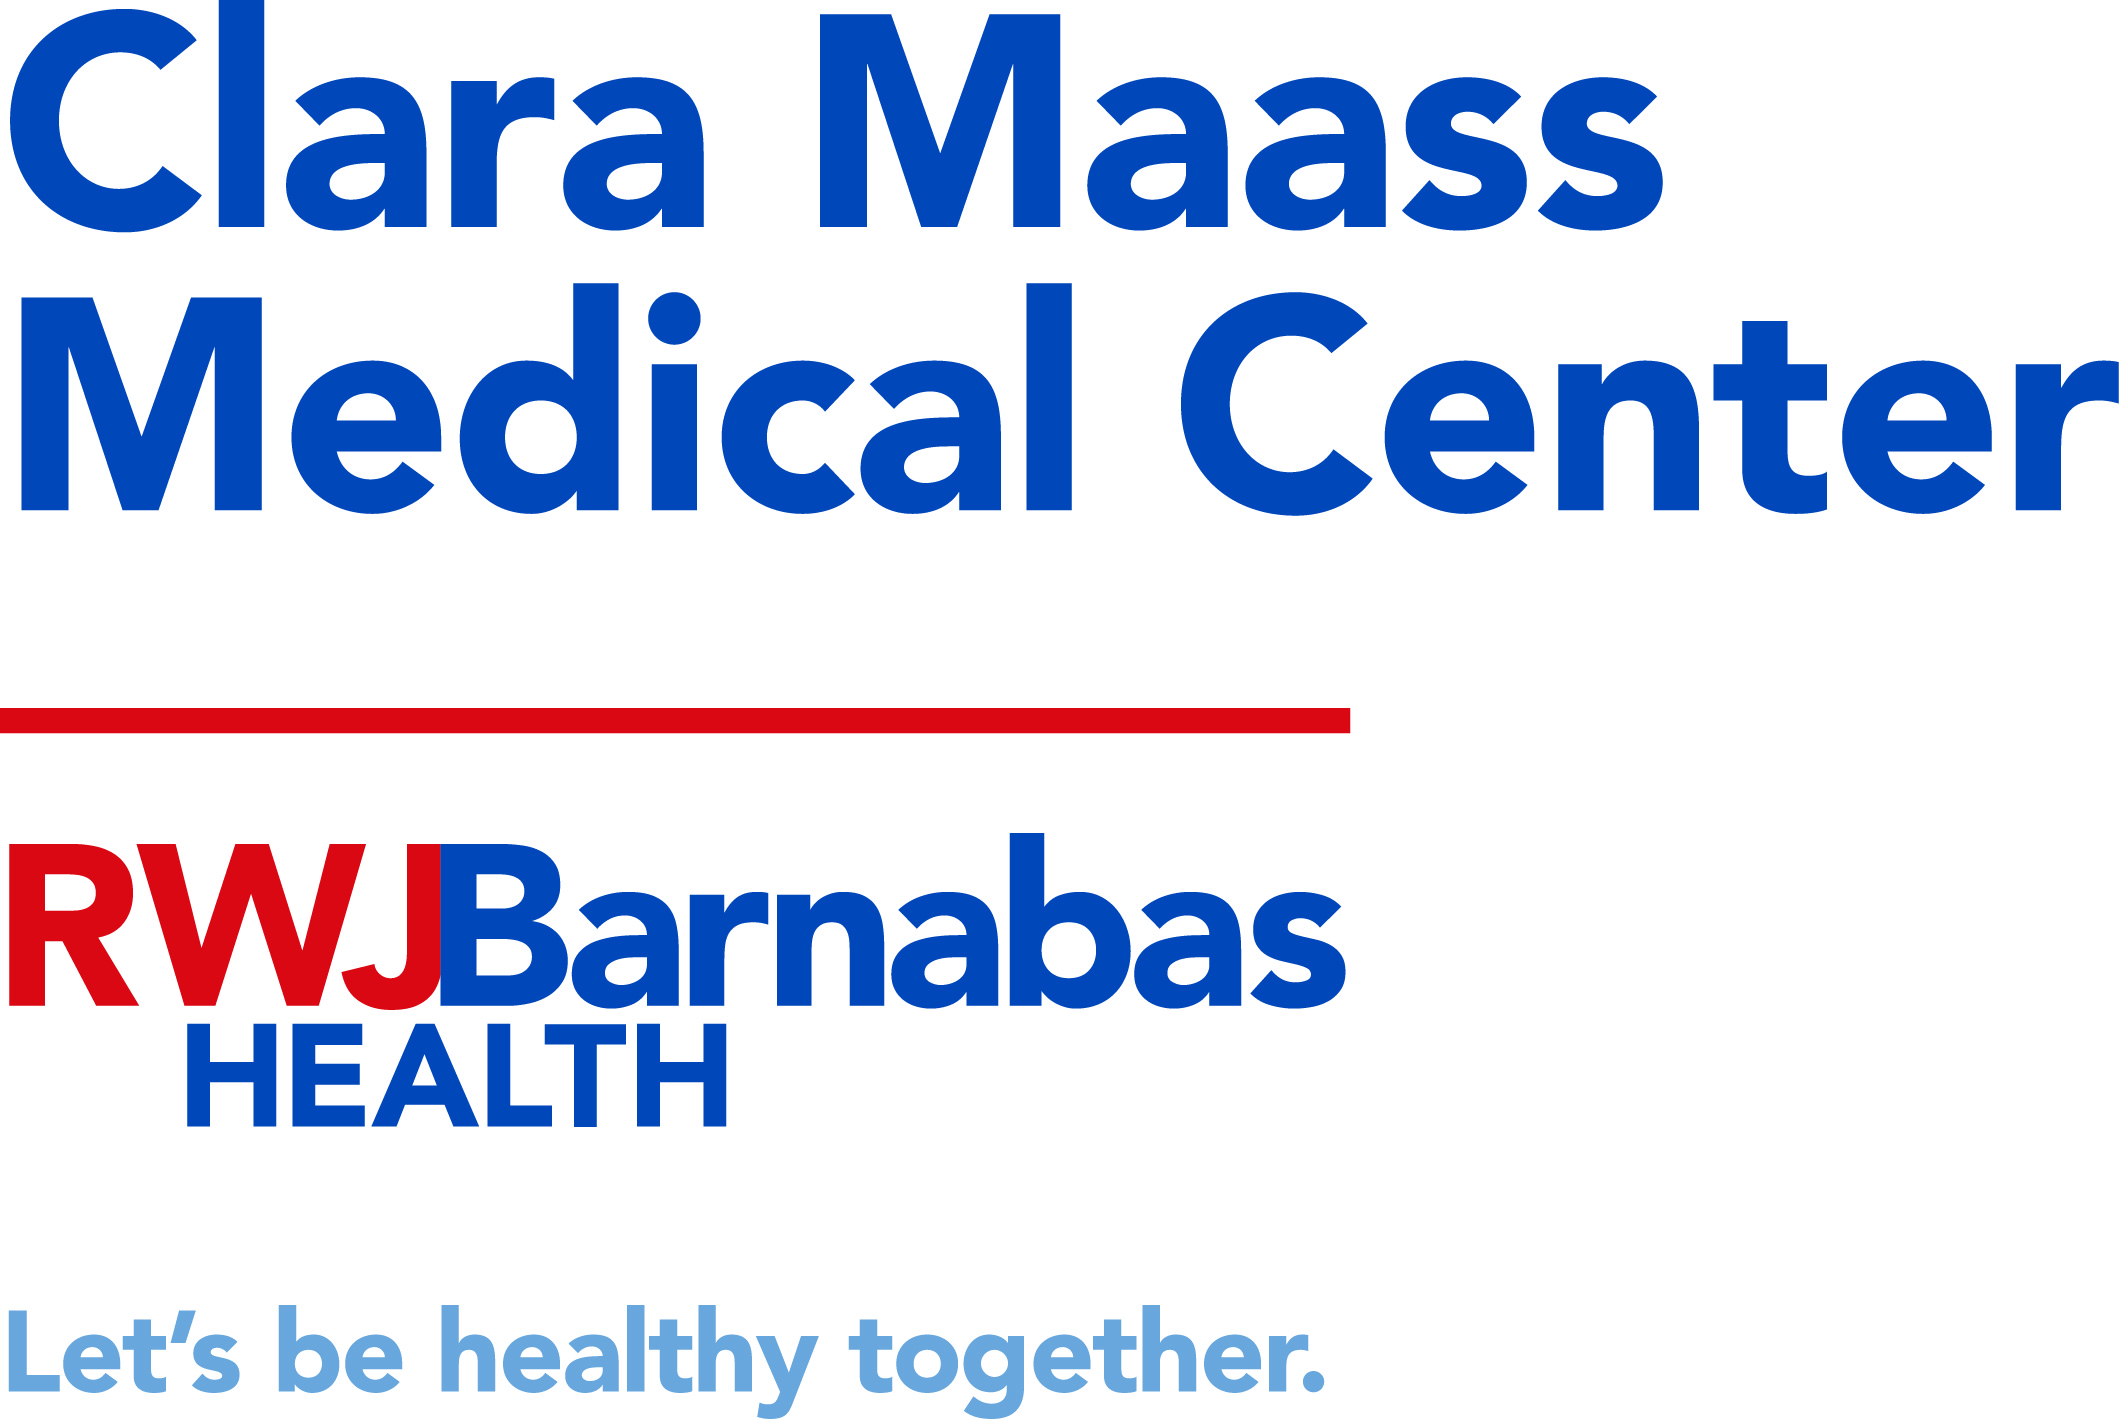 Clara Maas Medical Center